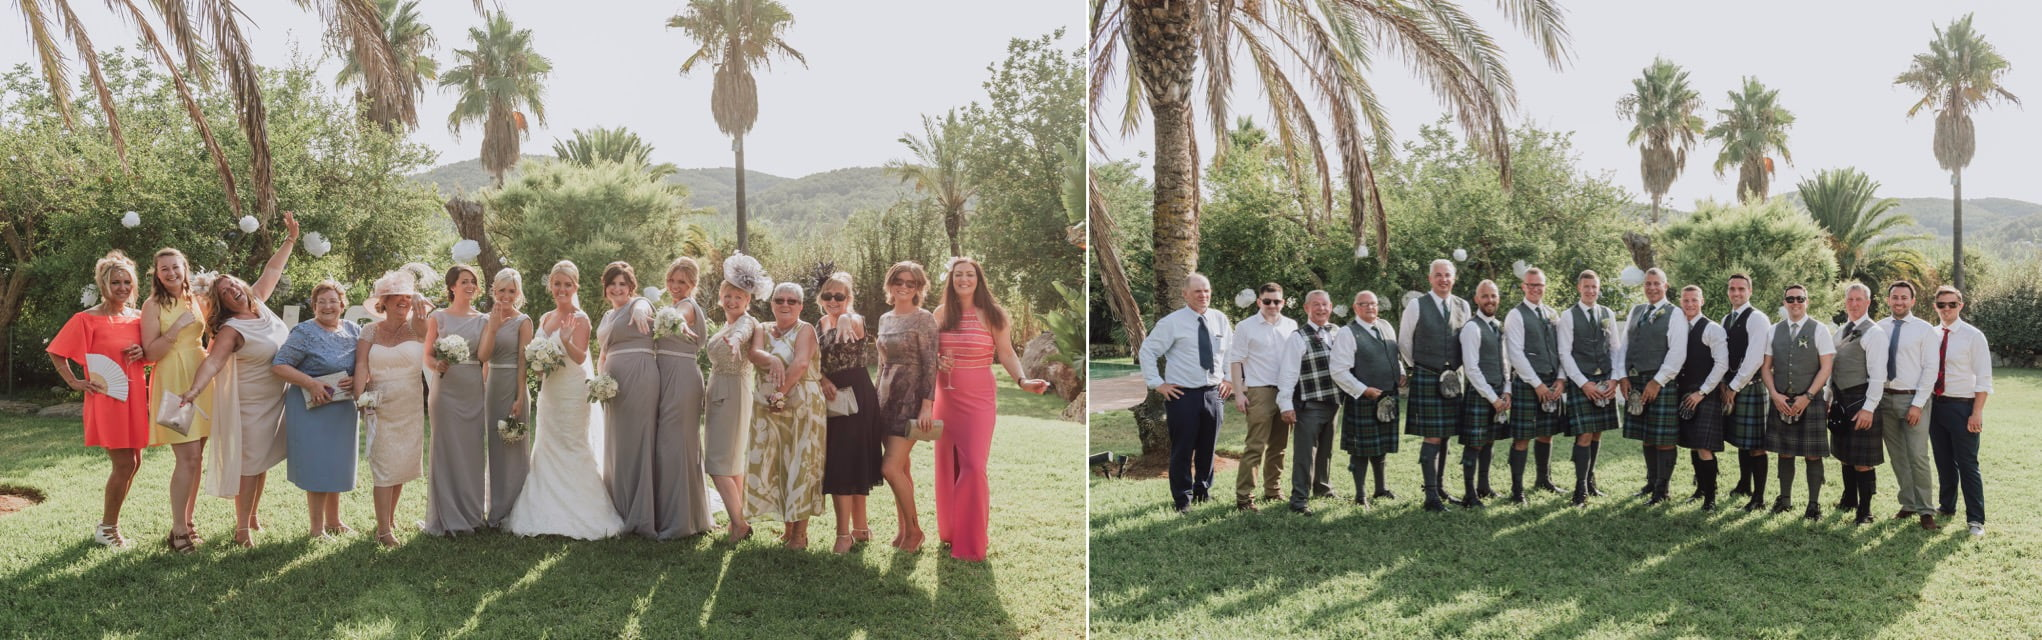 Can gall; ibiza wedding; donna murray photography52